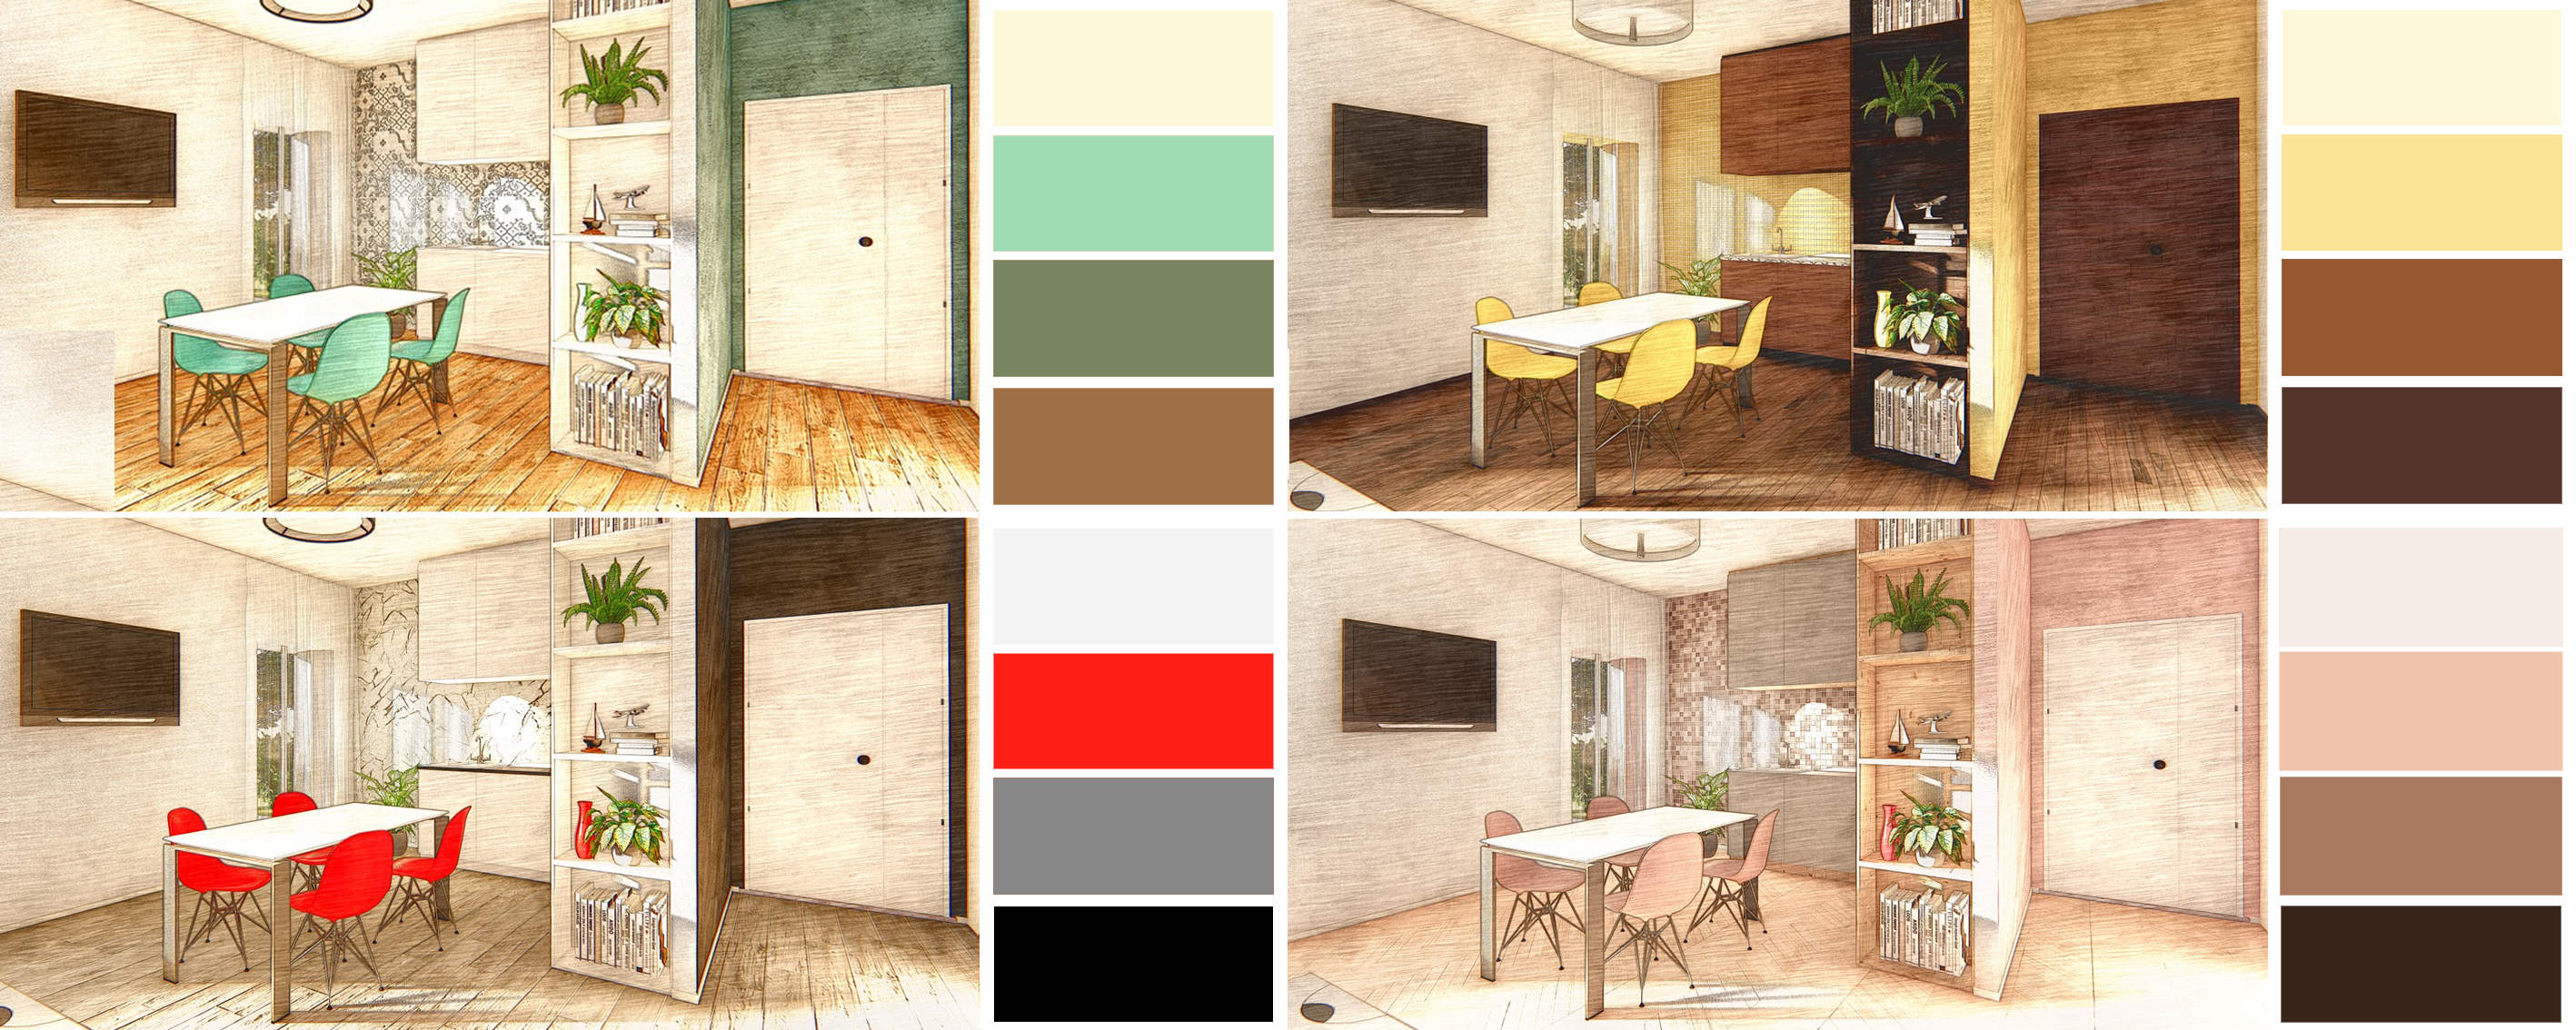 Virtual Staging italia: Render artistico e prova colore